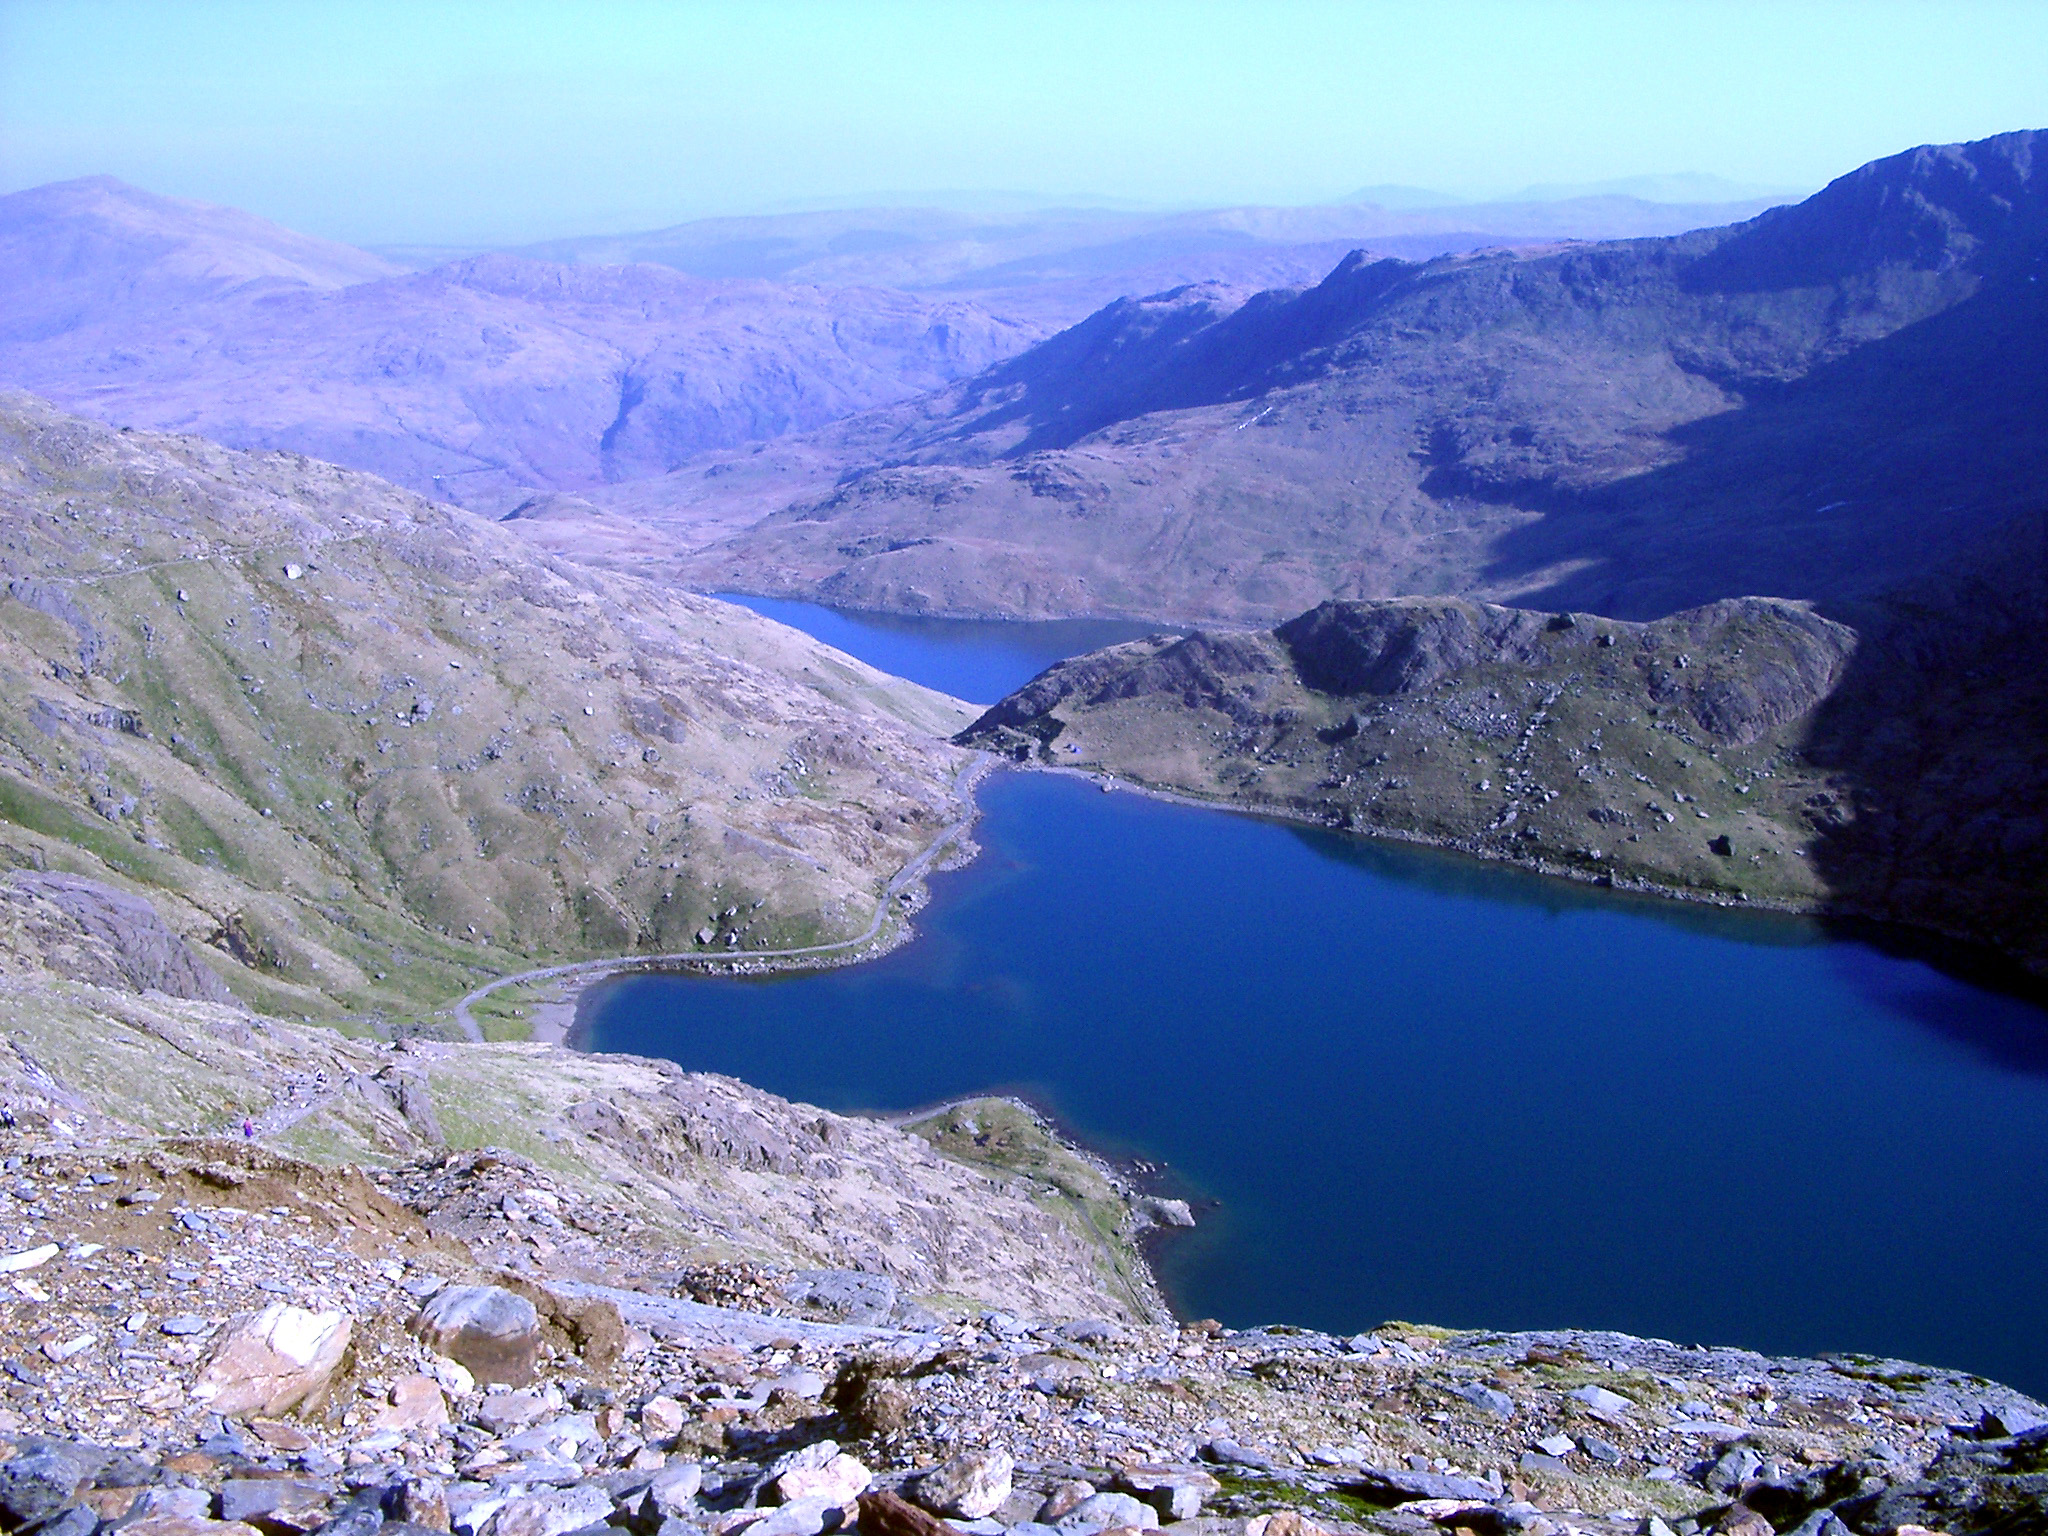 View from Snowdon of a beautiful blue mountain lake in the Welsh wilderness, Gwynedd, Wales, UK